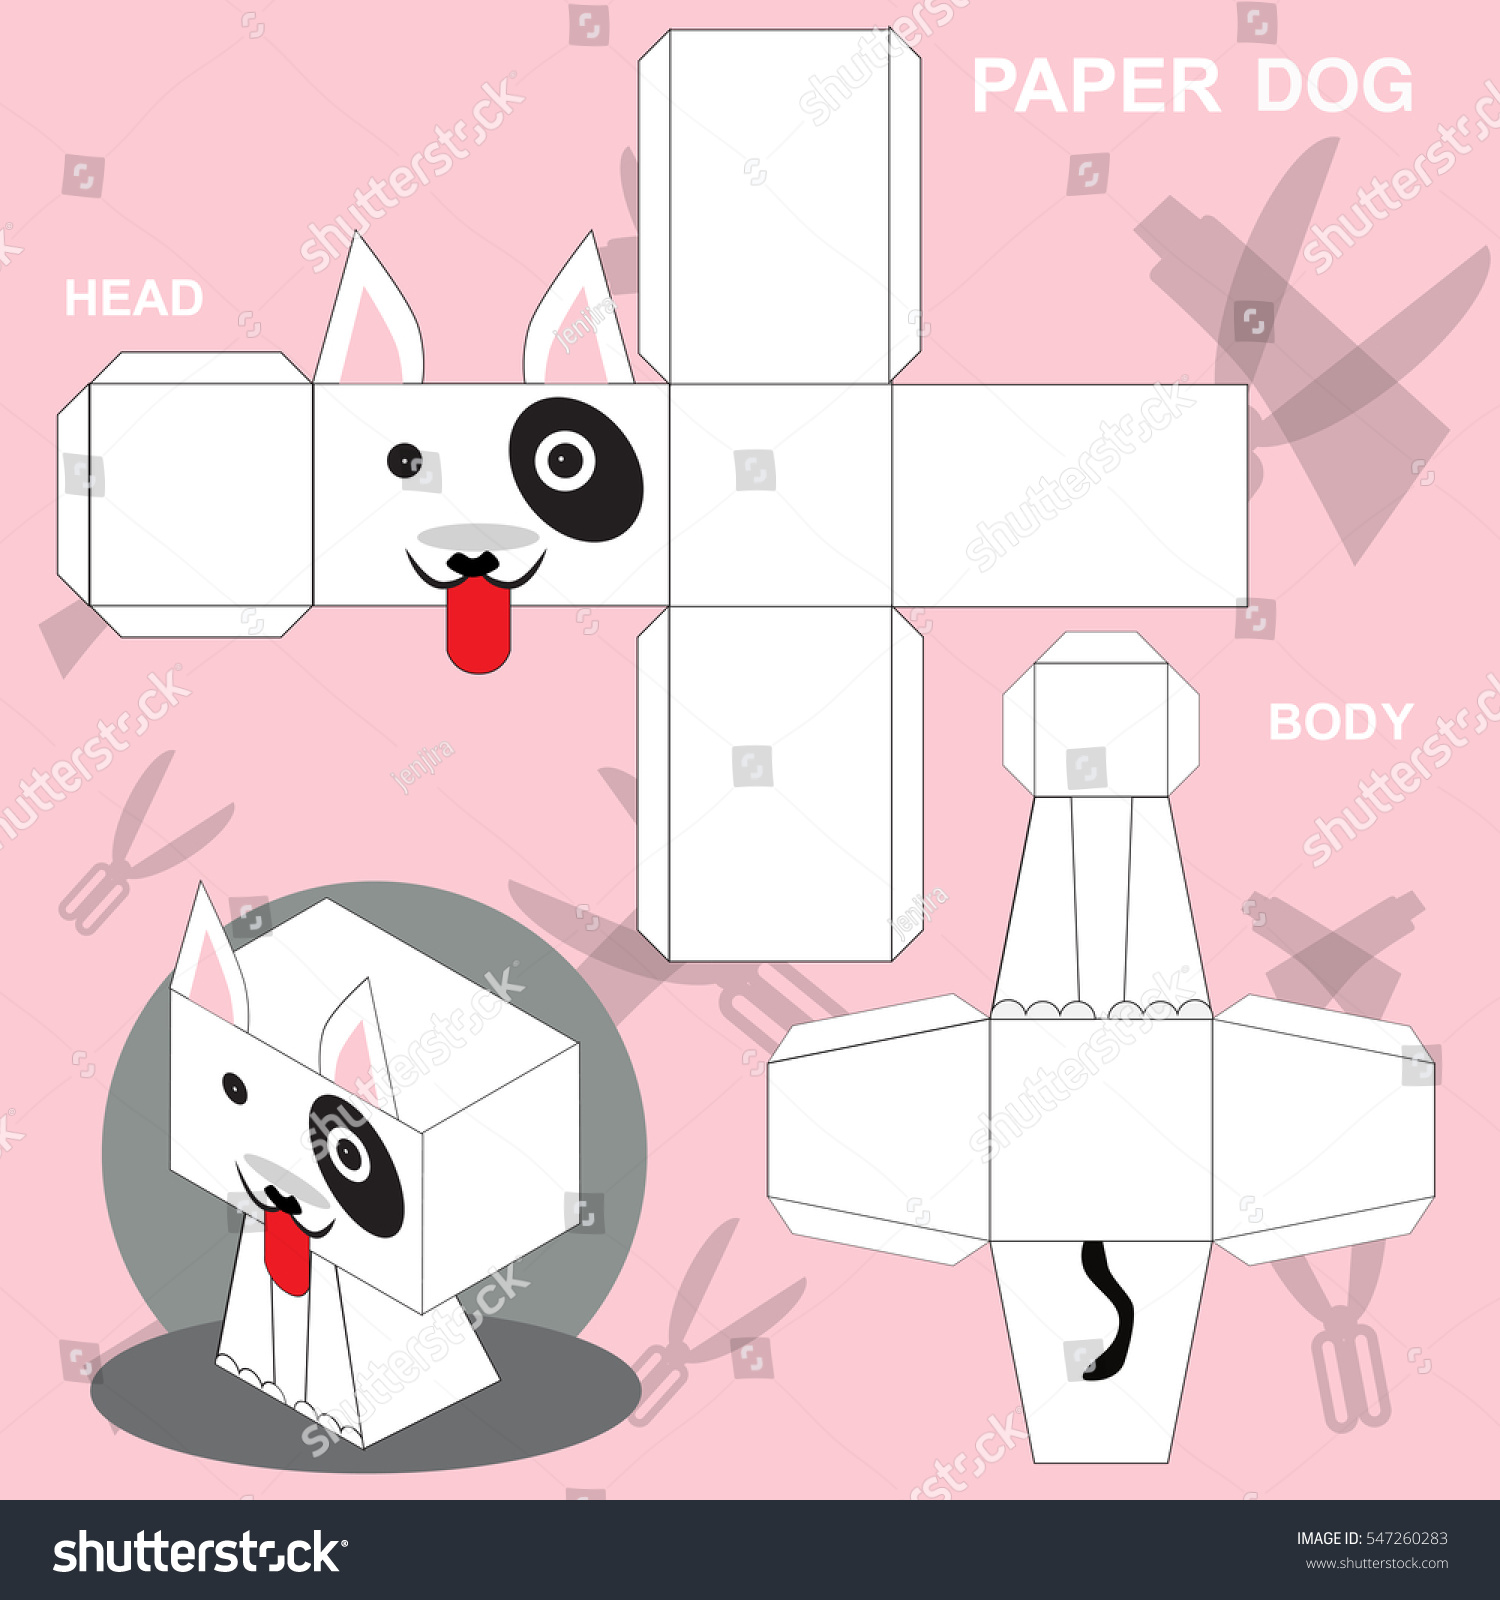 Dog Paper Craft Template Stock Vector (Royalty Free) 547260283 ...